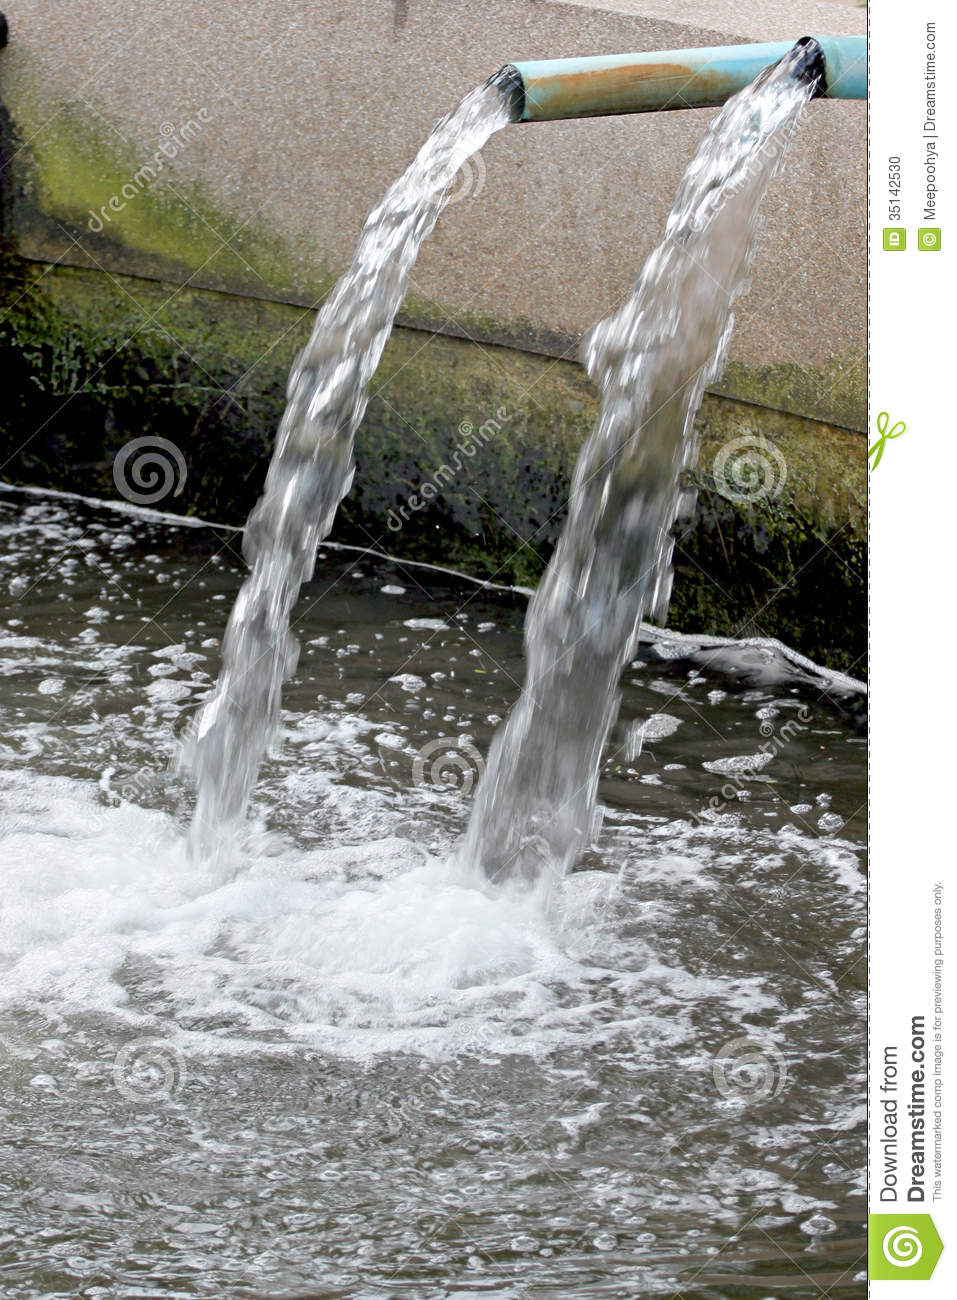 Water Flowing Out Of Pipe Stock Photo Image Of Trough